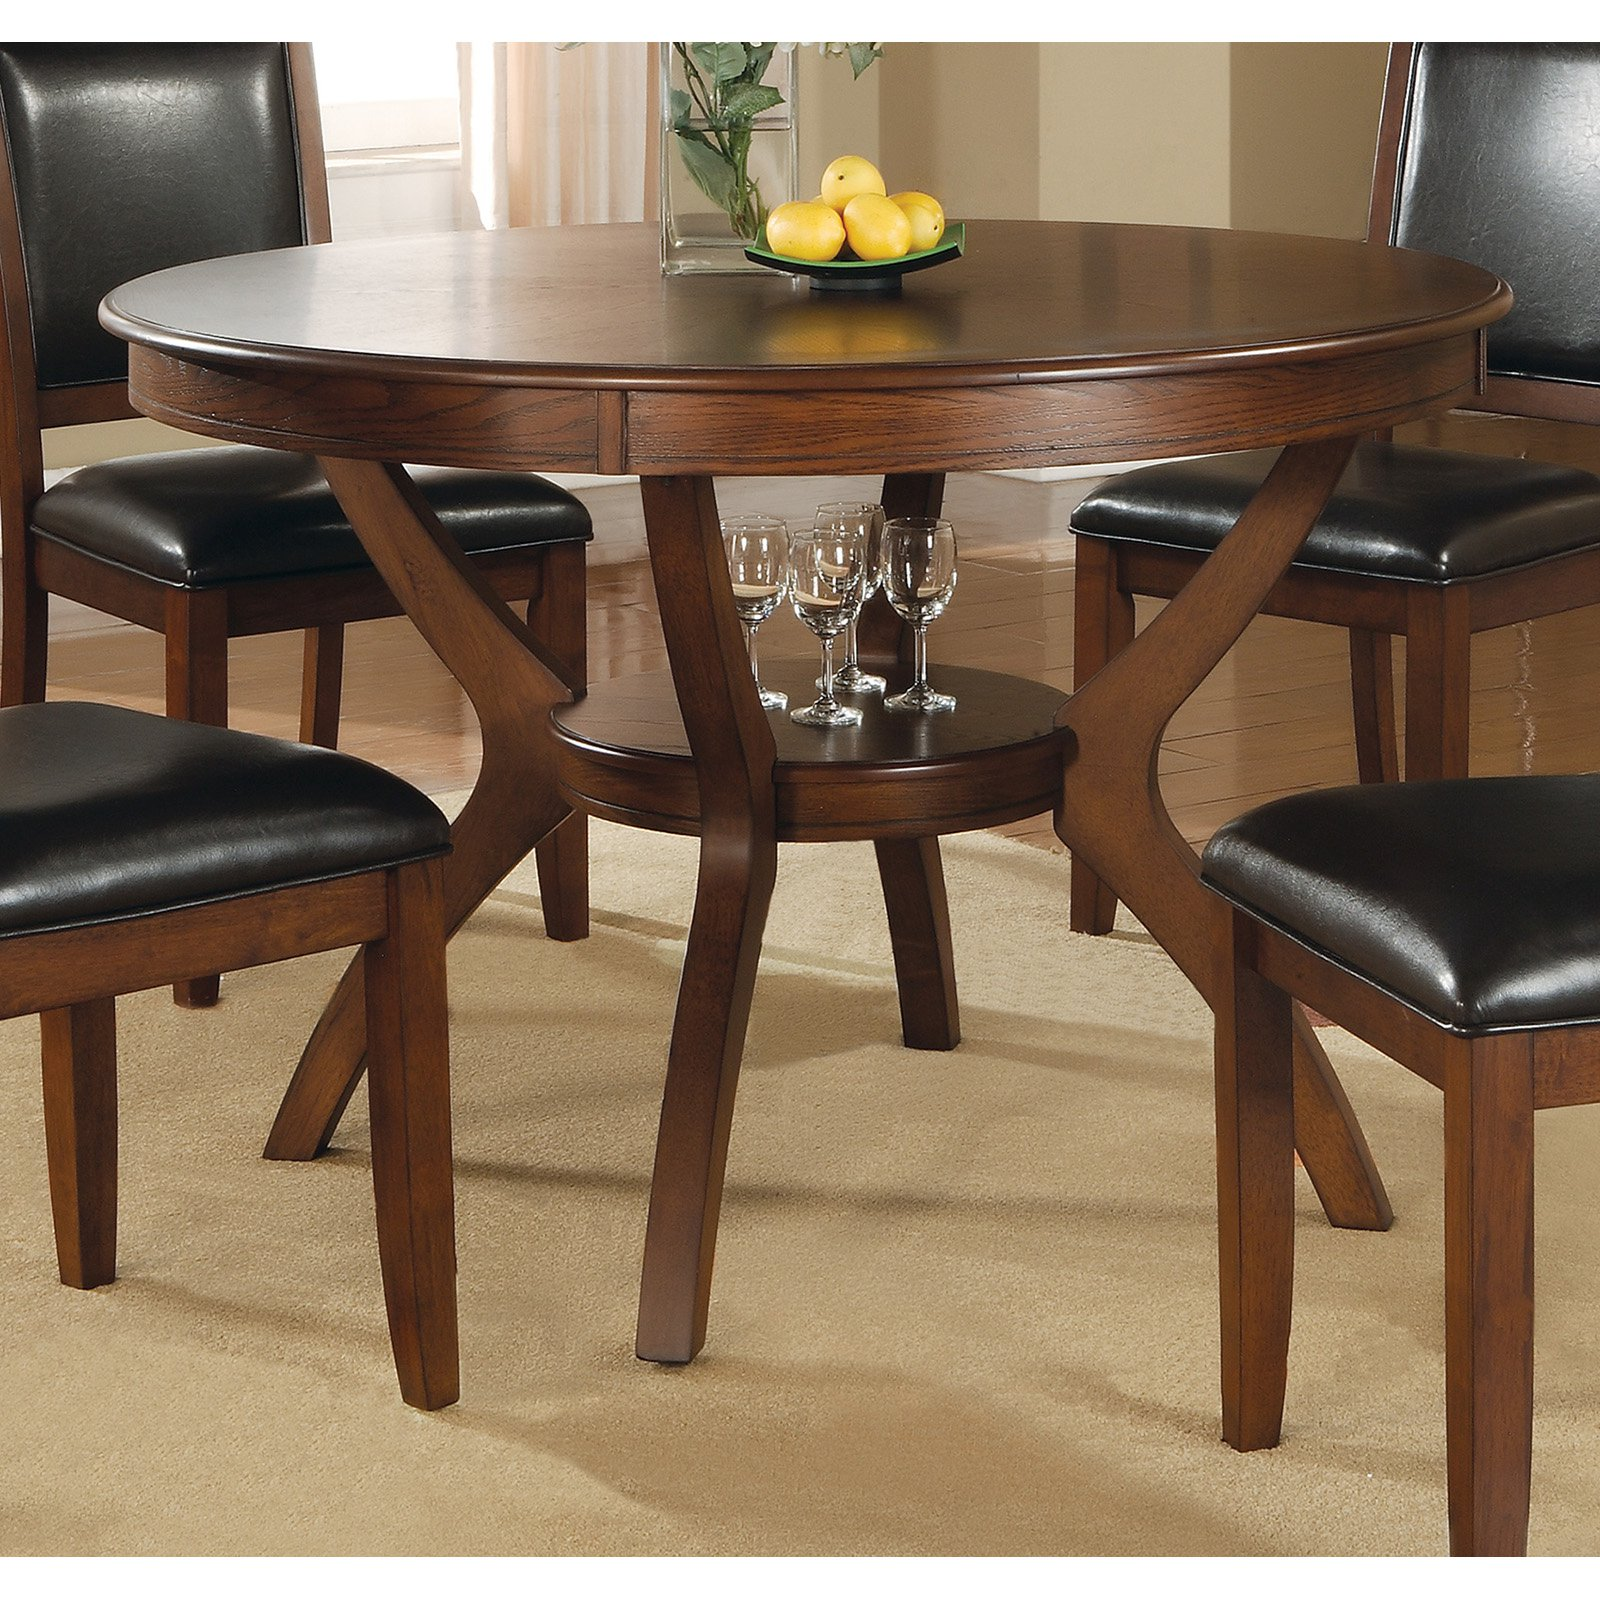 "Coaster Company 48"" Round Nelms Dining Table, Deep Brown"